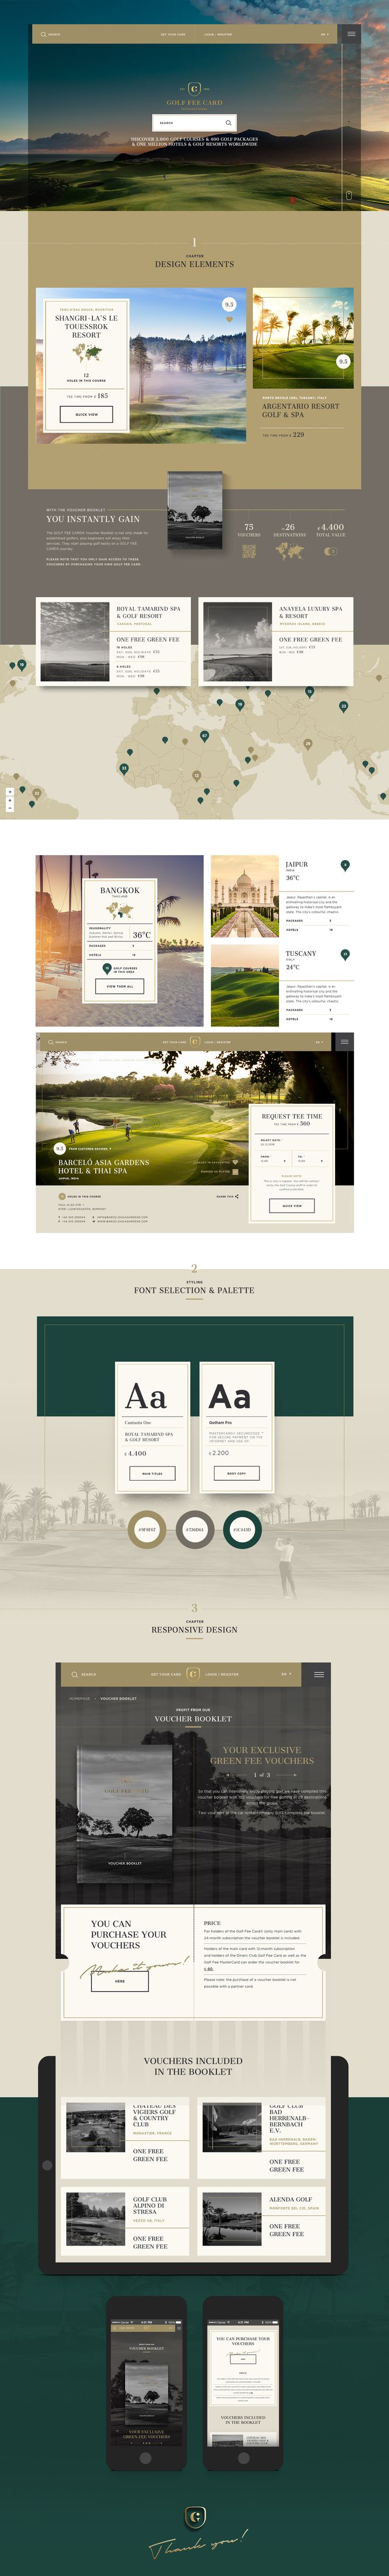 """The all-new """"Golf Fee Card International"""" website, is a complete platform of services and products that refer to all golf enthusiasts.Through this website, all golfers can purchase the Golf Fee Card International, a unique privileges card. The website o…"""